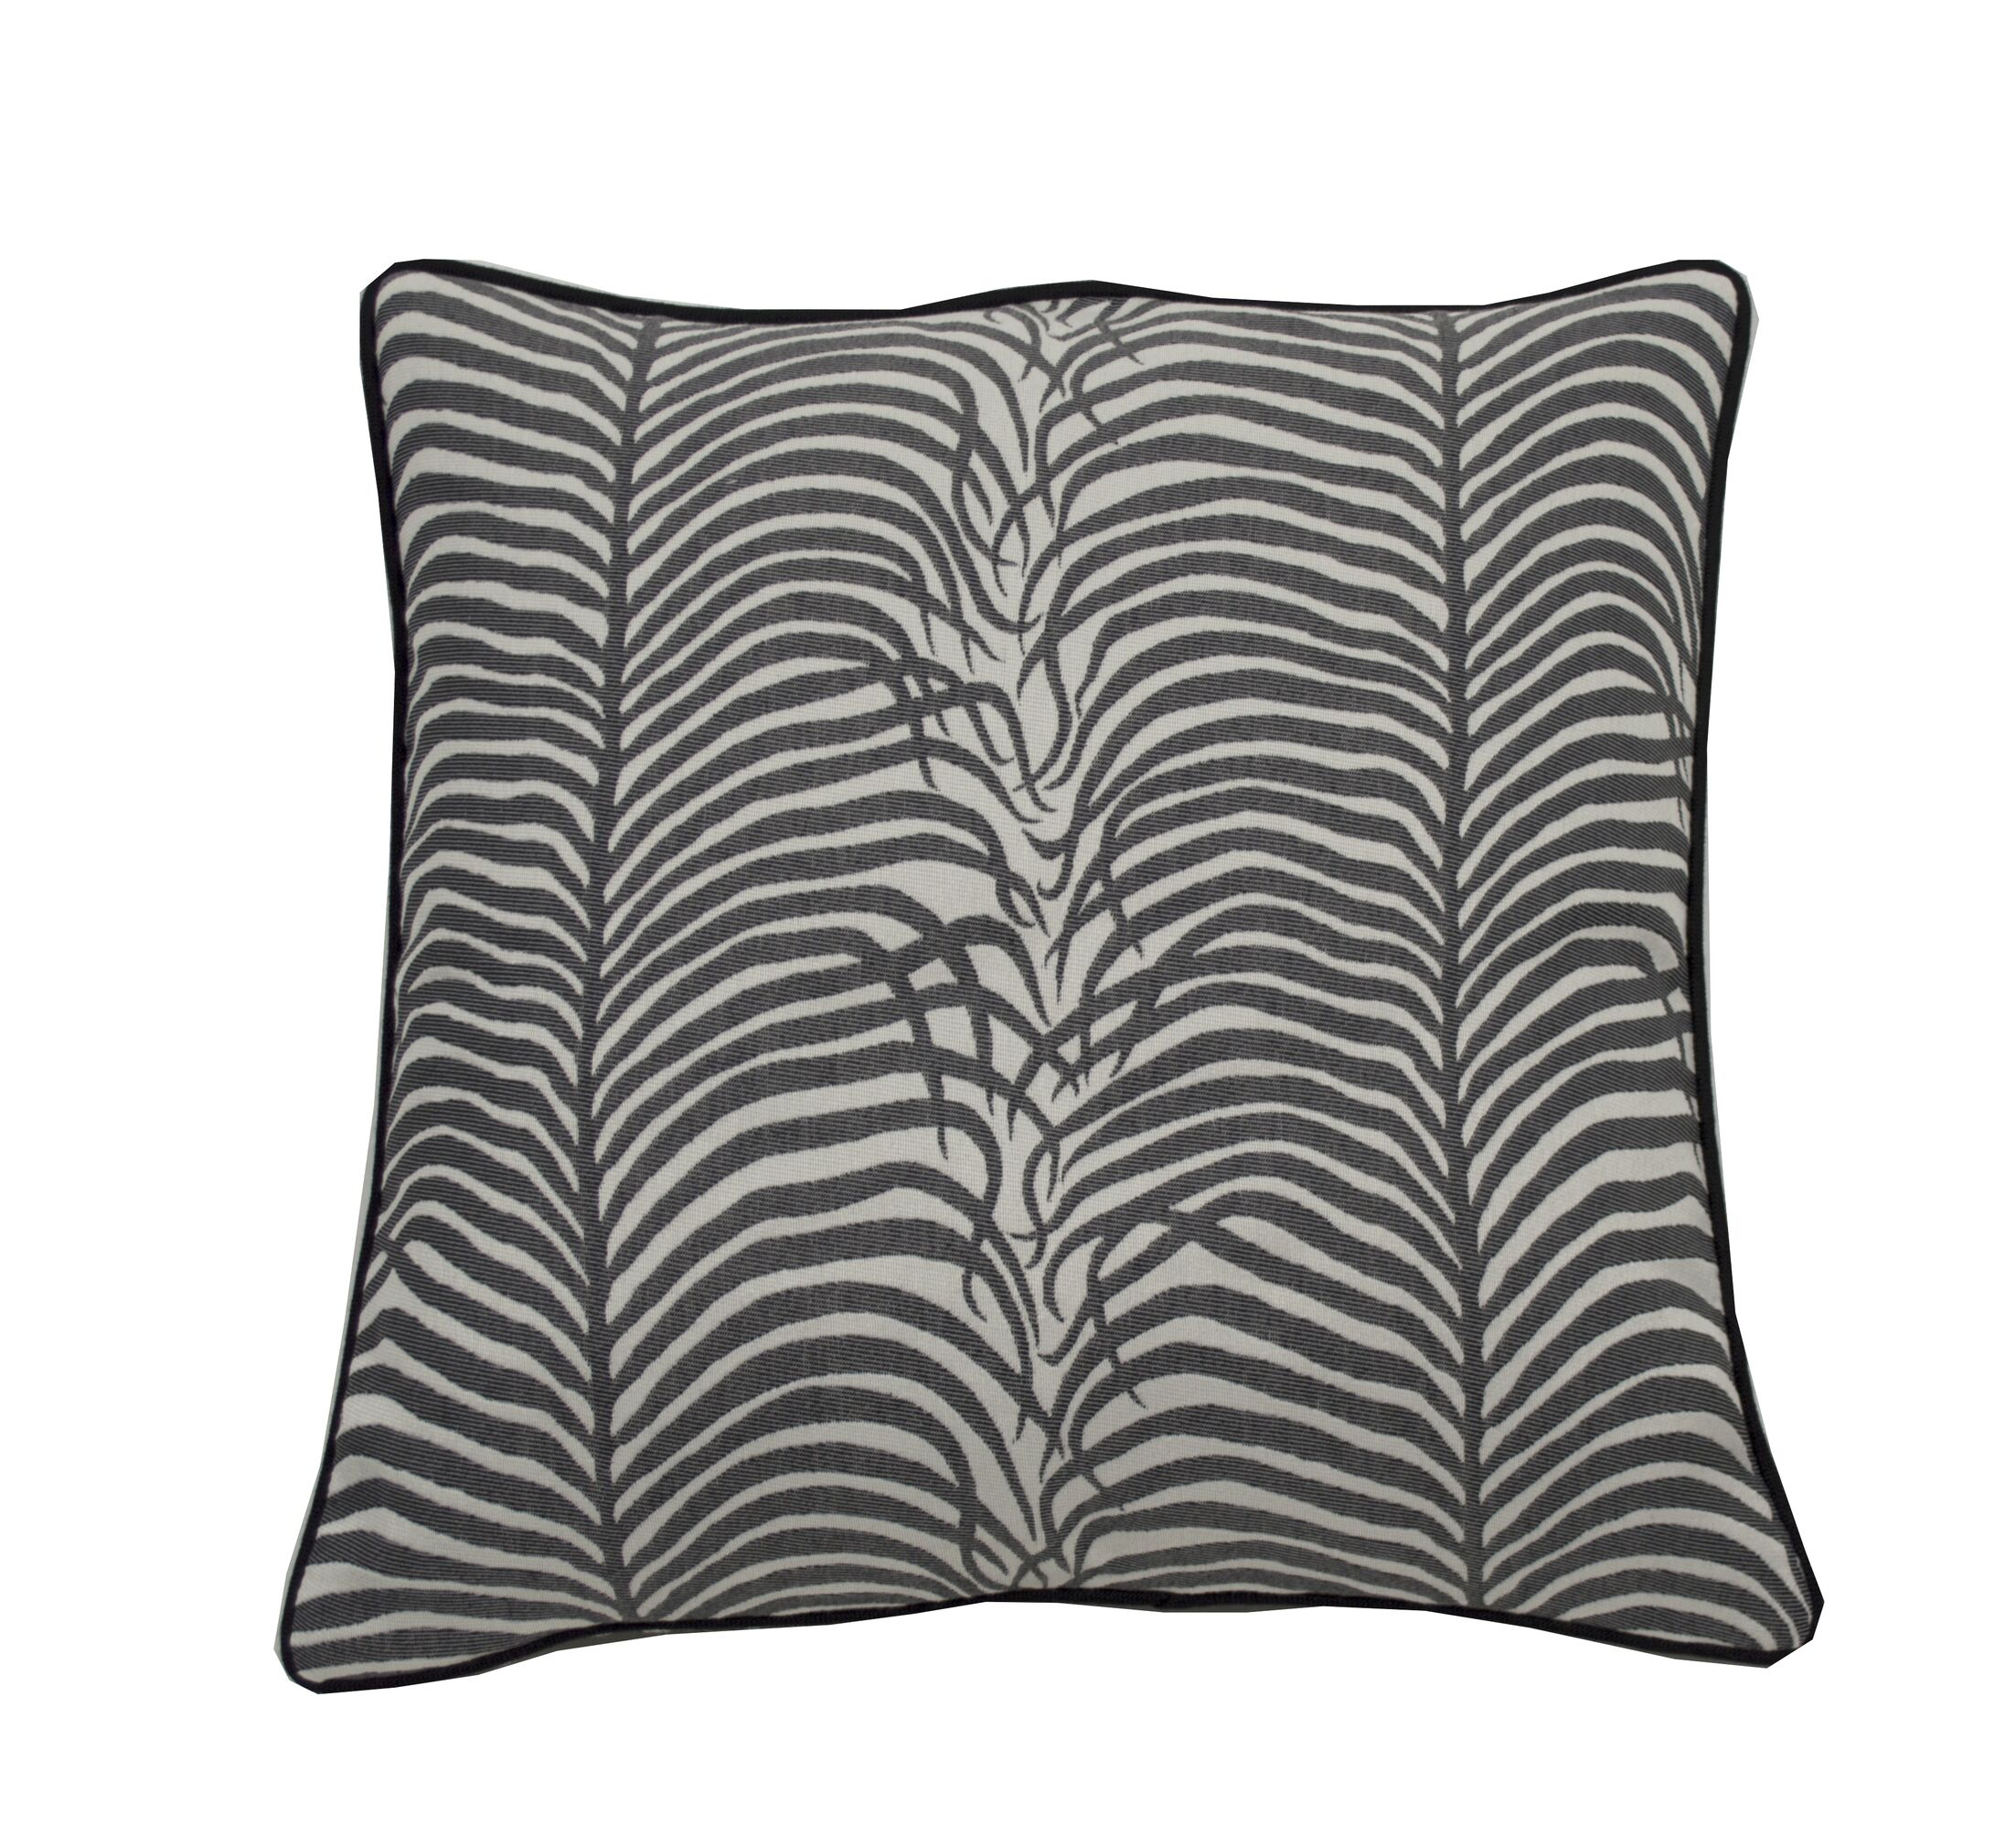 Summer Sulu Indoor/Outdoor Throw Pillow (Set of 2) Size: 20